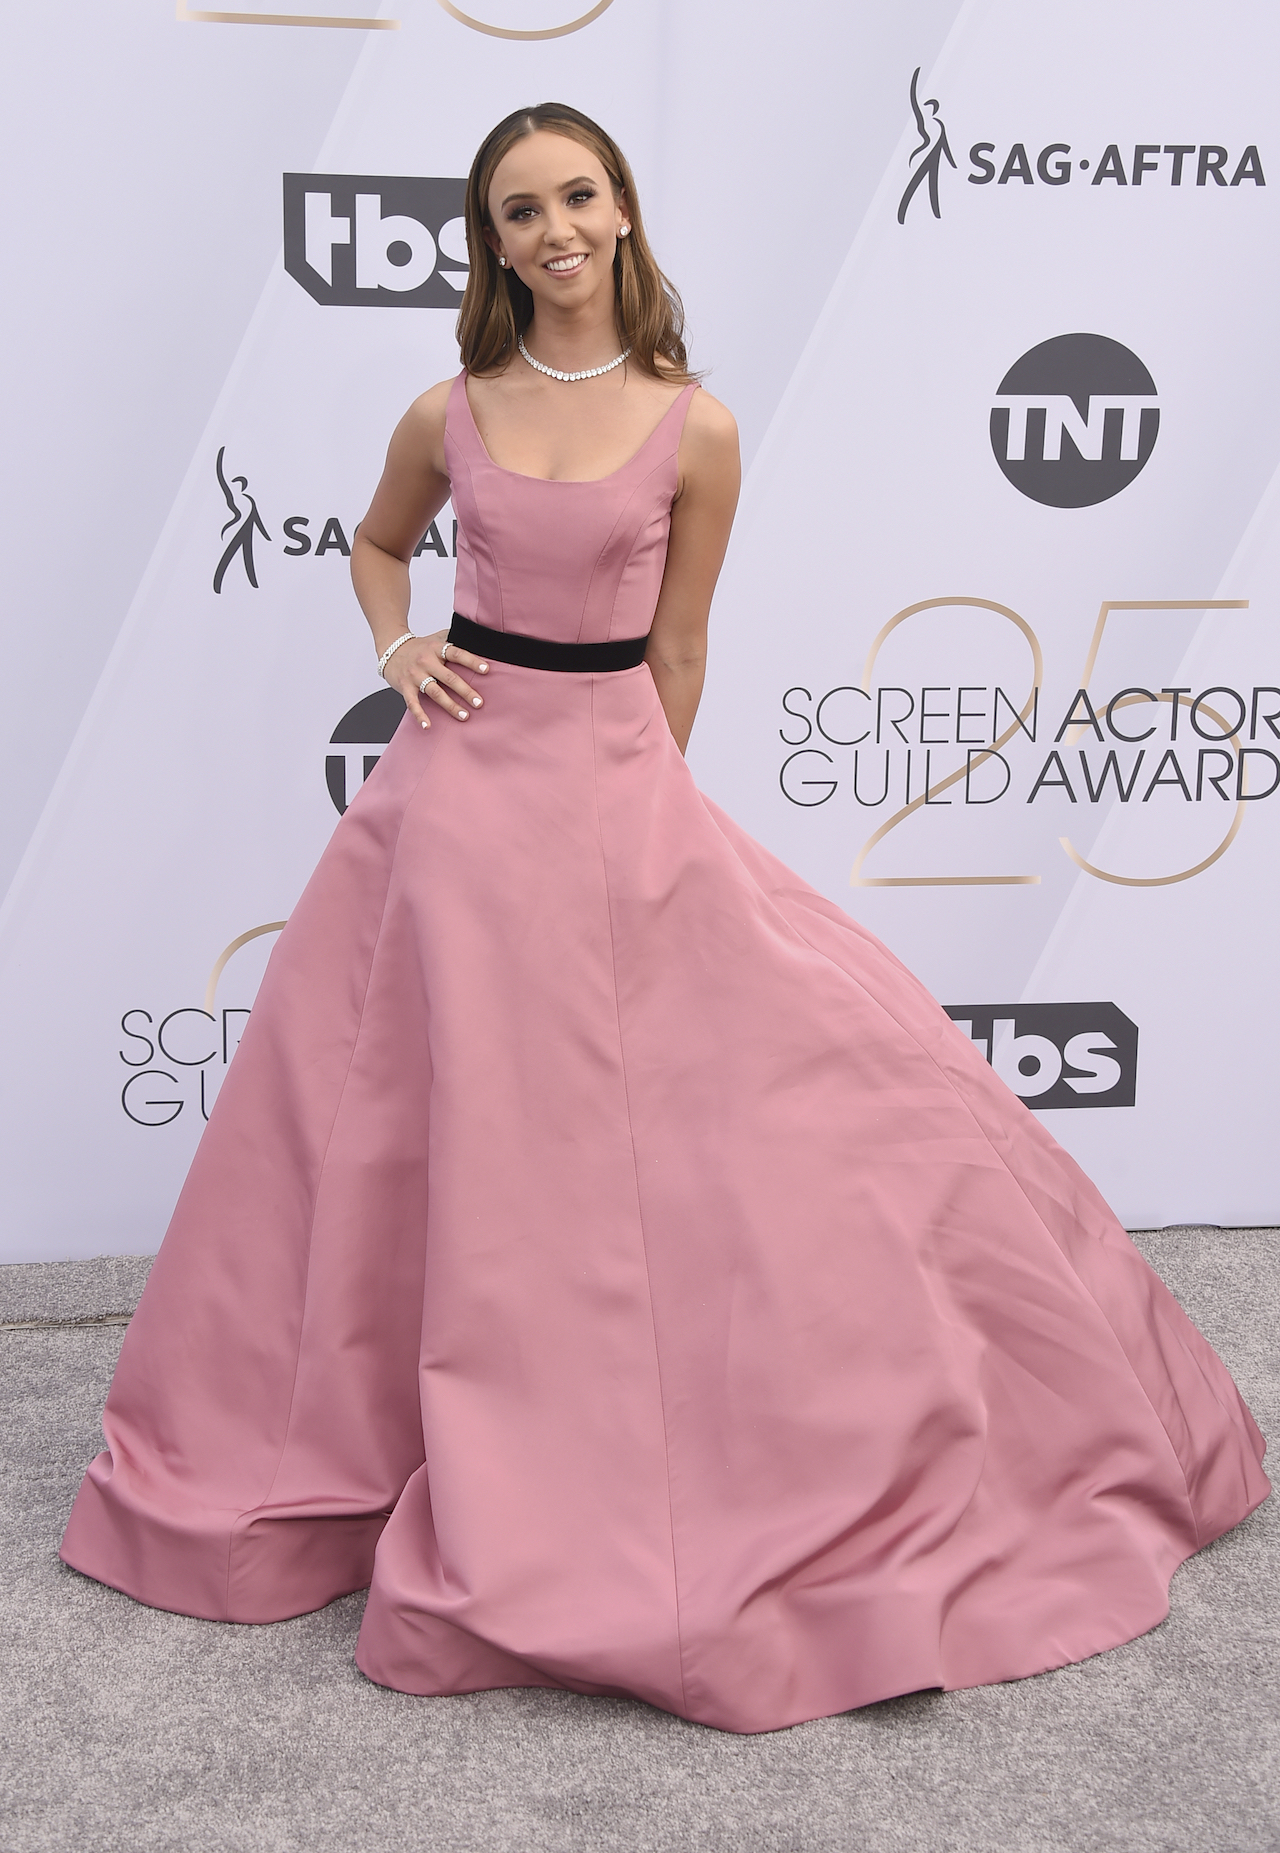 "<div class=""meta image-caption""><div class=""origin-logo origin-image ap""><span>AP</span></div><span class=""caption-text"">Britt Baron arrives at the 25th annual Screen Actors Guild Awards at the Shrine Auditorium & Expo Hall on Sunday, Jan. 27, 2019, in Los Angeles. (Jordan Strauss/Invision/AP)</span></div>"